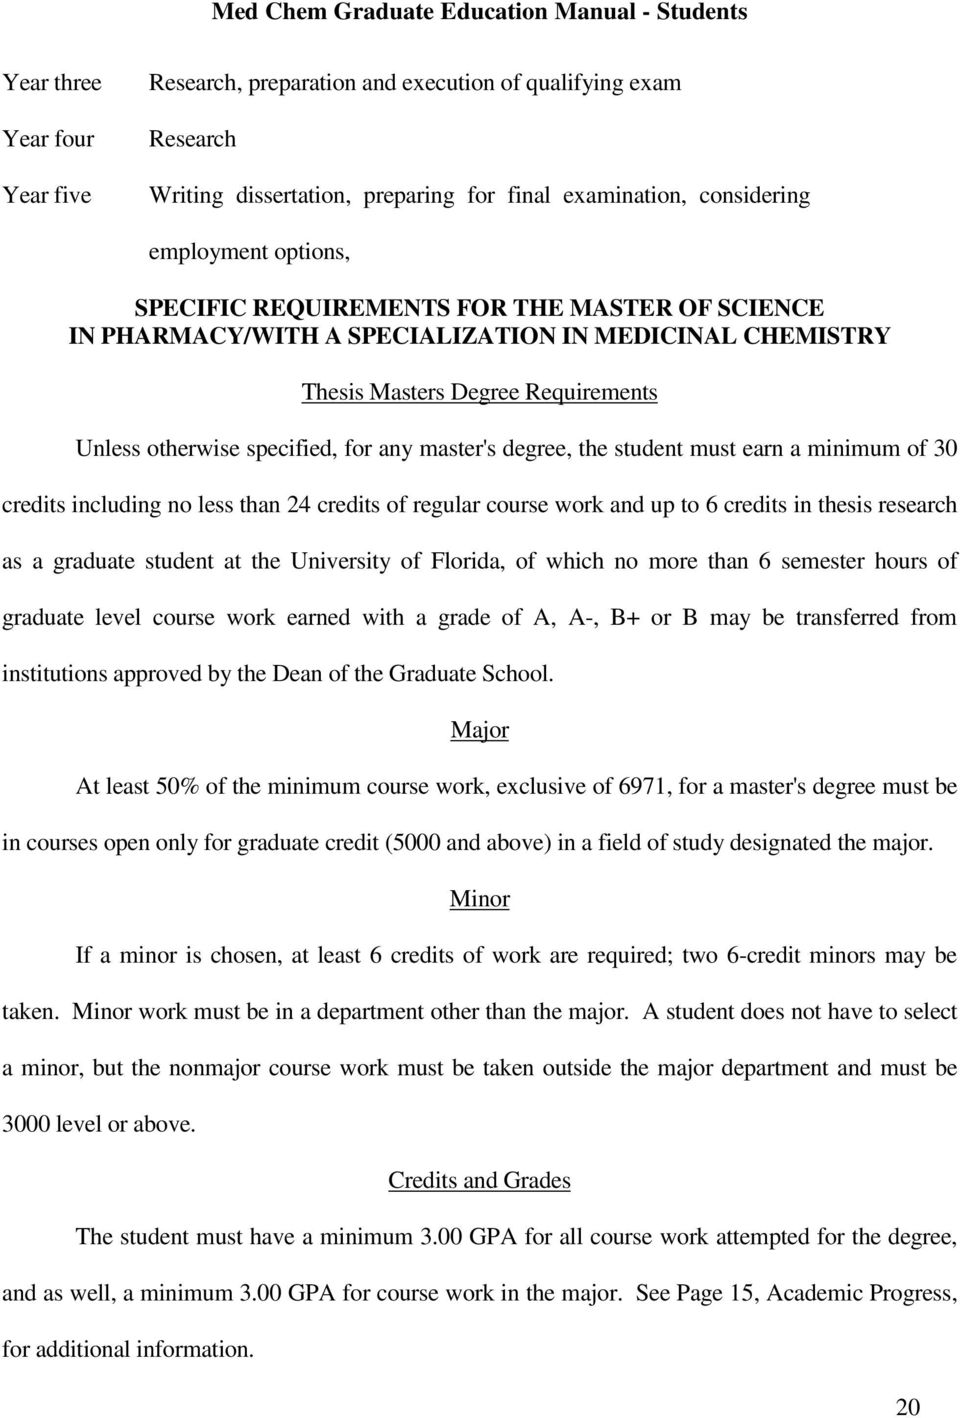 must earn a minimum of 30 credits including no less than 24 credits of regular course work and up to 6 credits in thesis research as a graduate student at the University of Florida, of which no more